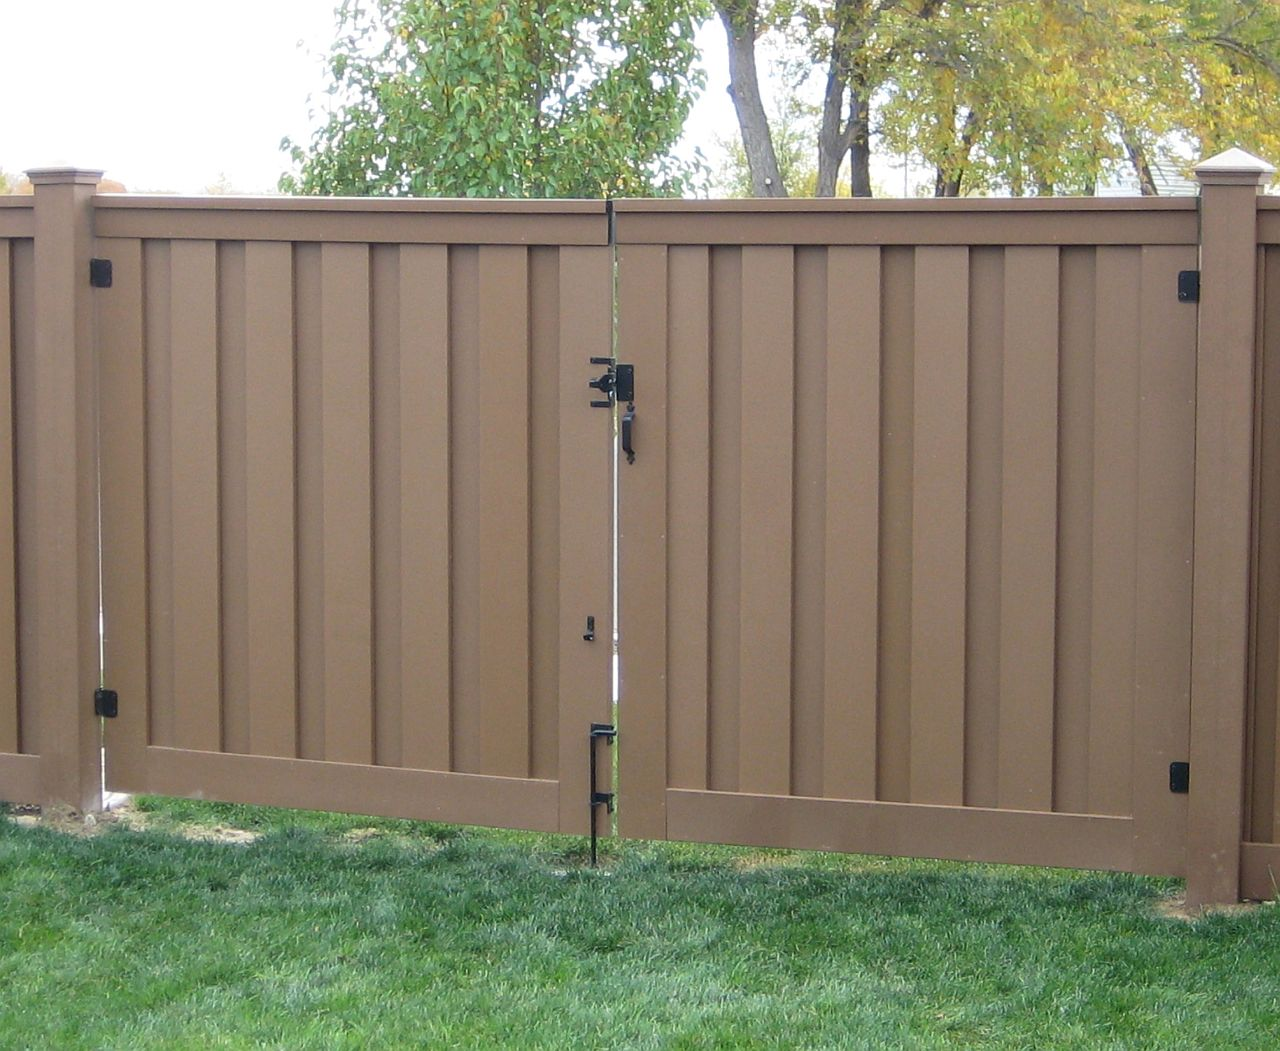 Double Fence Gate trex gates & hardware - low maintenance fencing, naturally